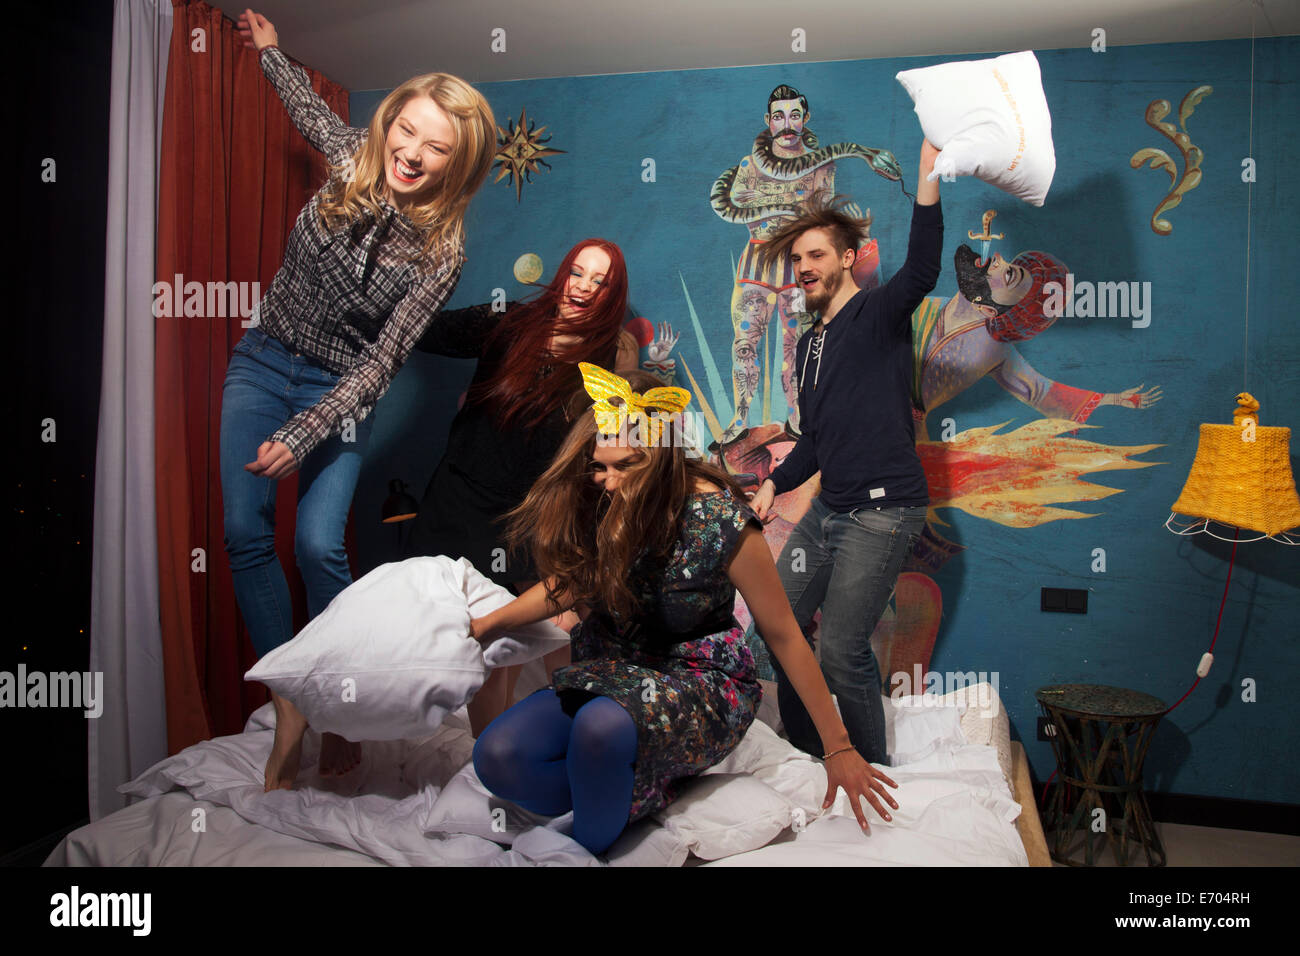 Quatre amis adultes Body Glamour on hotel bed Banque D'Images